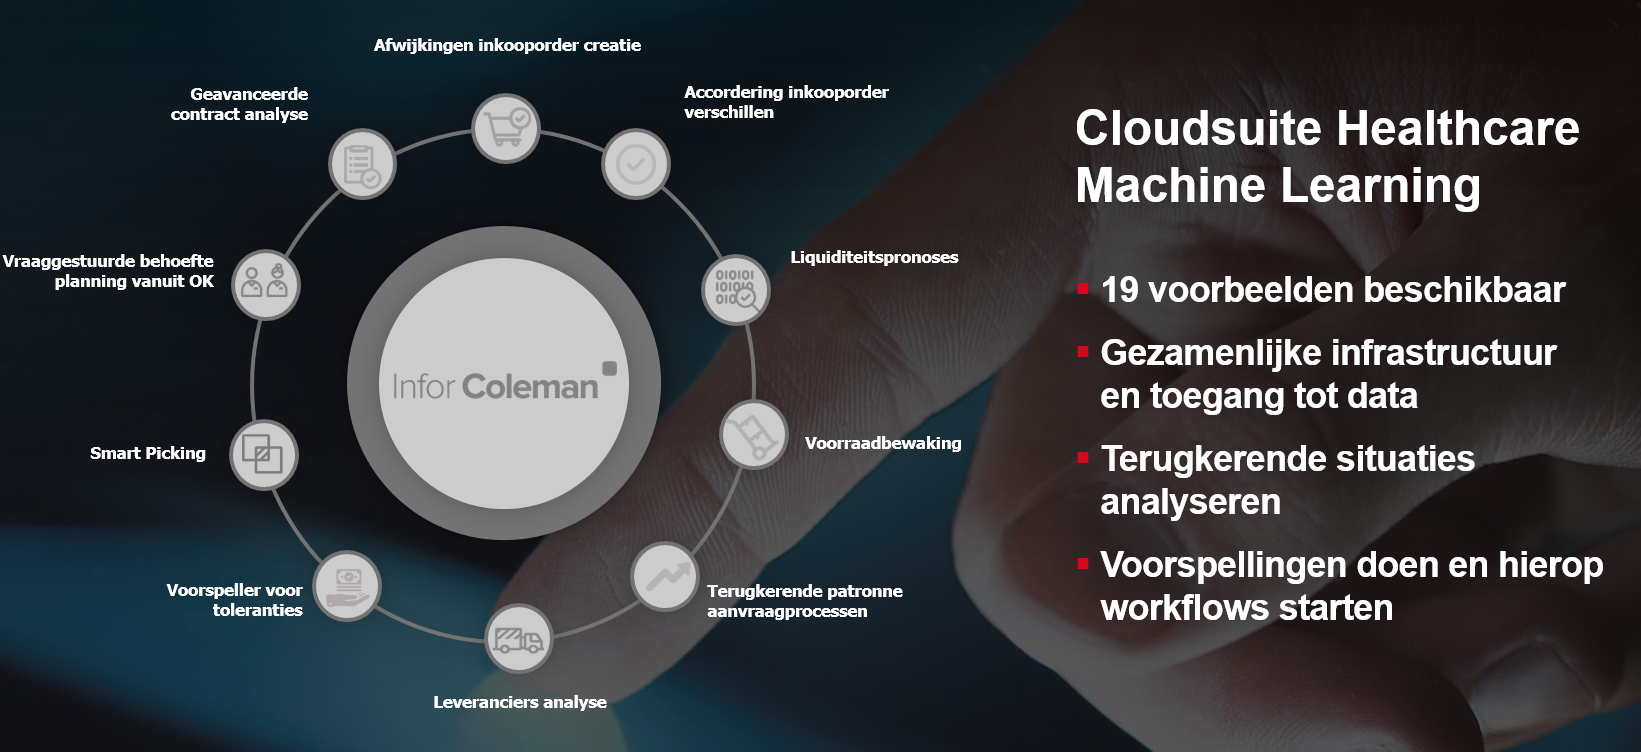 Cloudsuite Healthcare Machine Learning